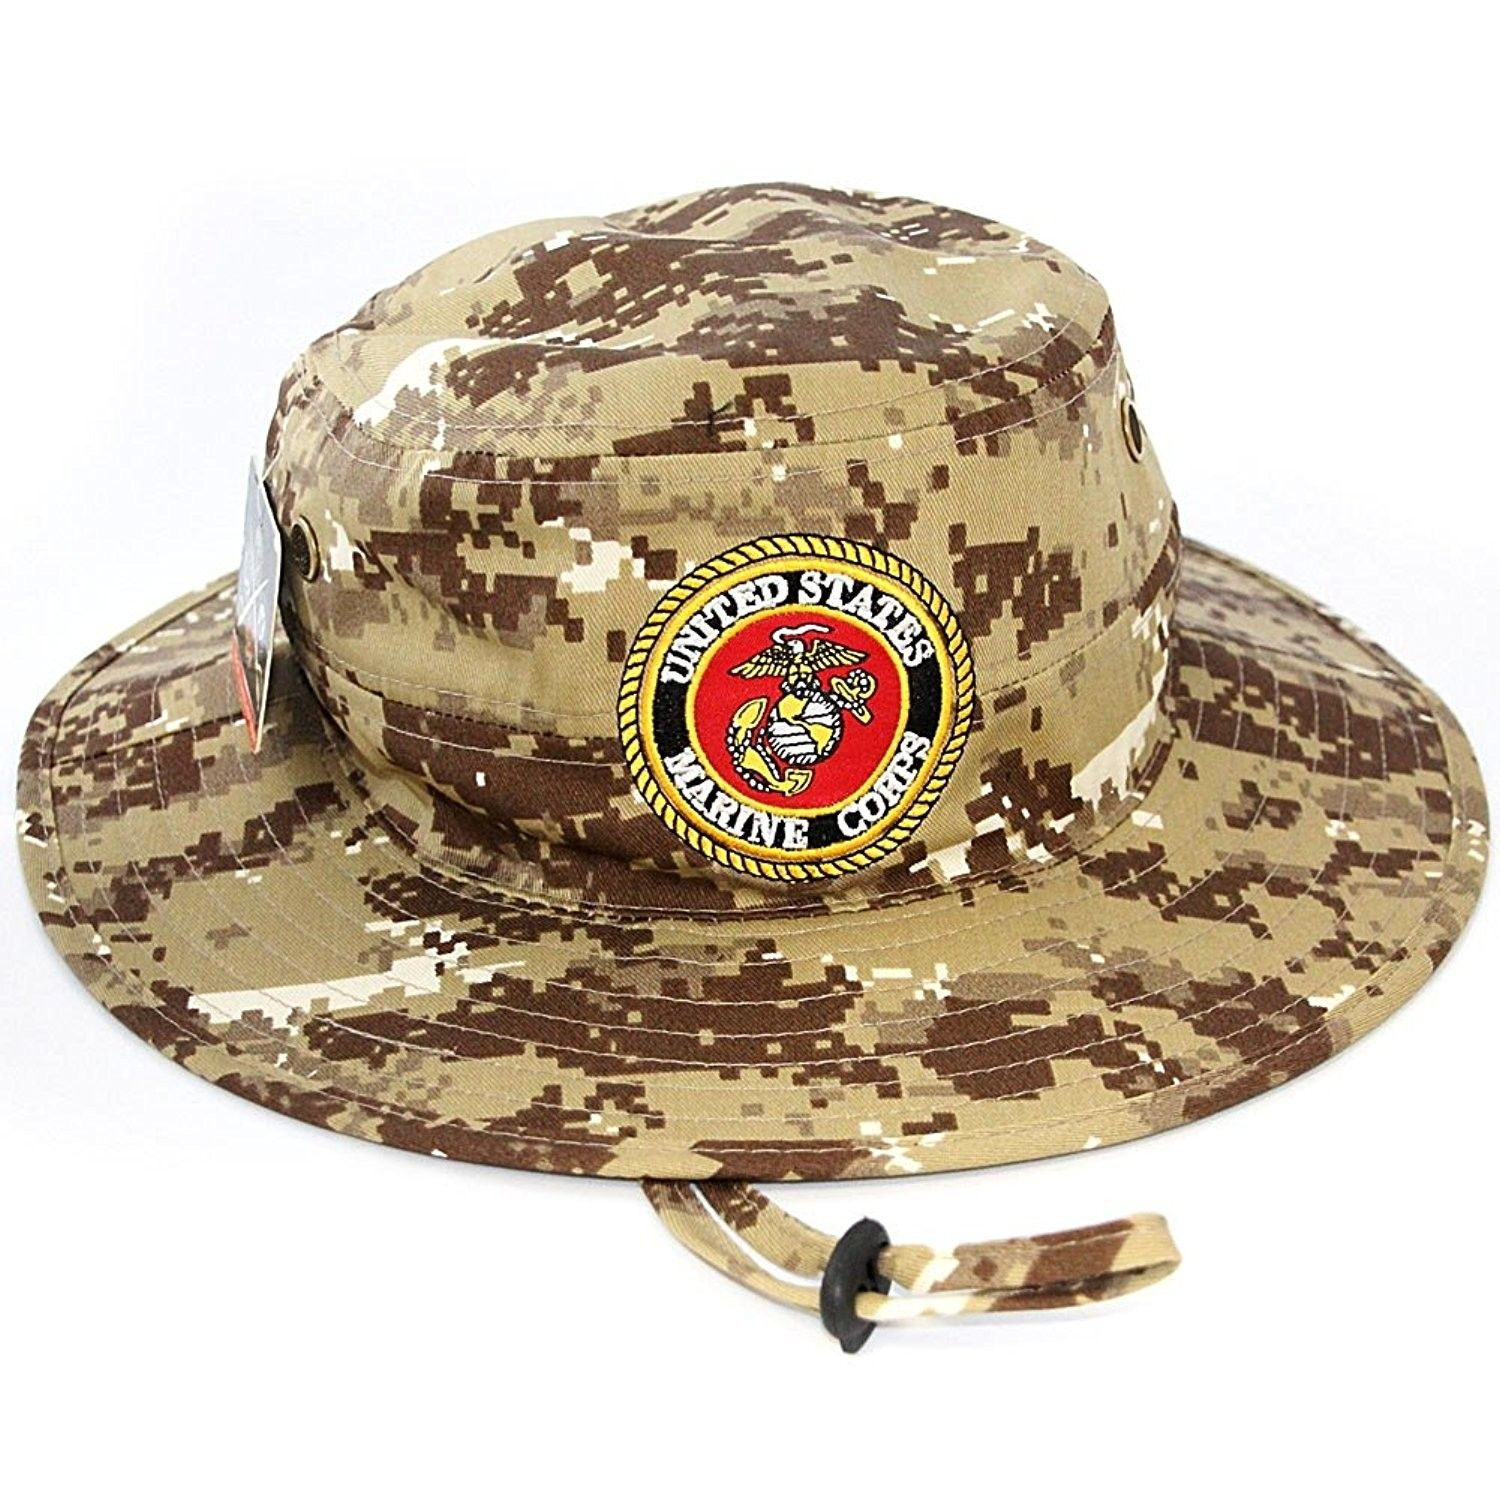 US Marine Corps Official Licensed Military Boonie Bucket Sun Hat Desert Camo  - CZ12JFSPG17 - Hats   Caps 7ac92dee2